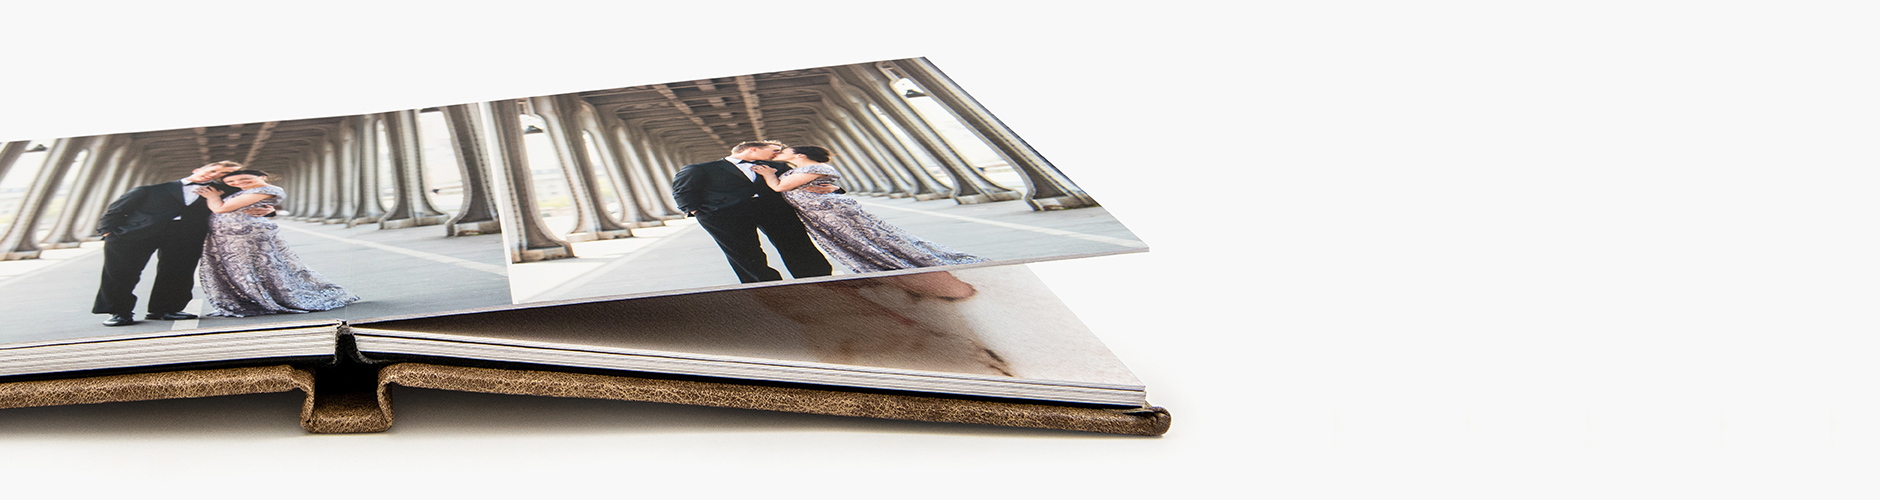 Wedding album premium quality starting at 99 nations photo lab flush mounted pages solutioingenieria Gallery